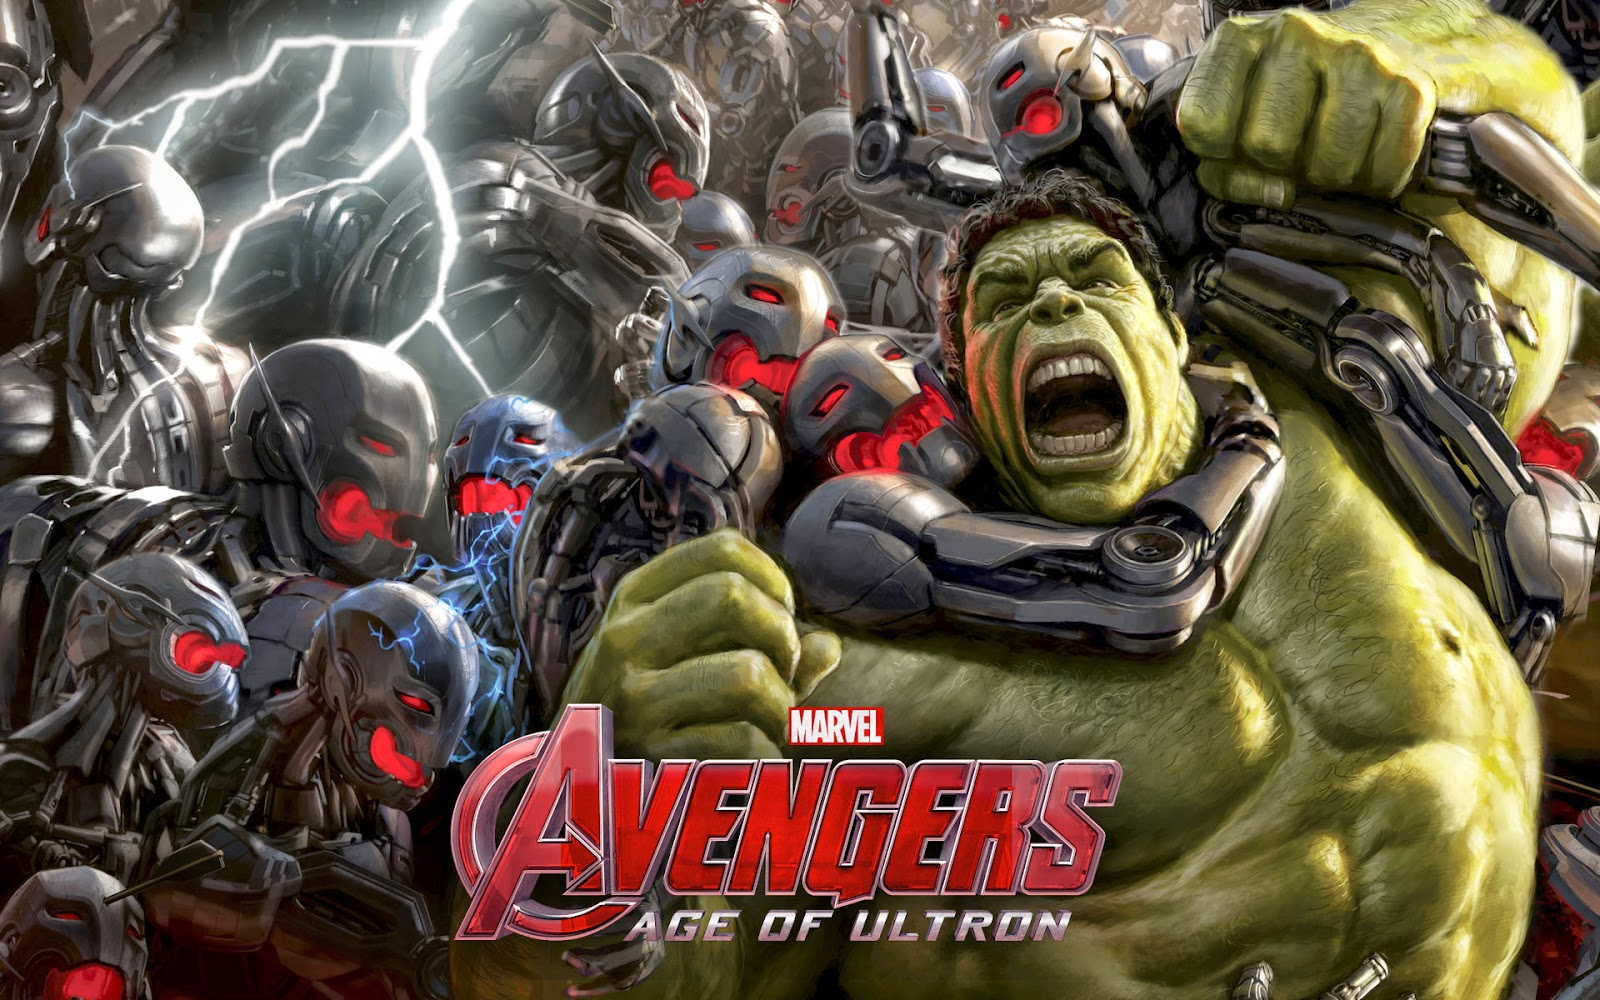 Tom Online Avengers Age Of Ultron 2015 Wallpaper - Kfzoom